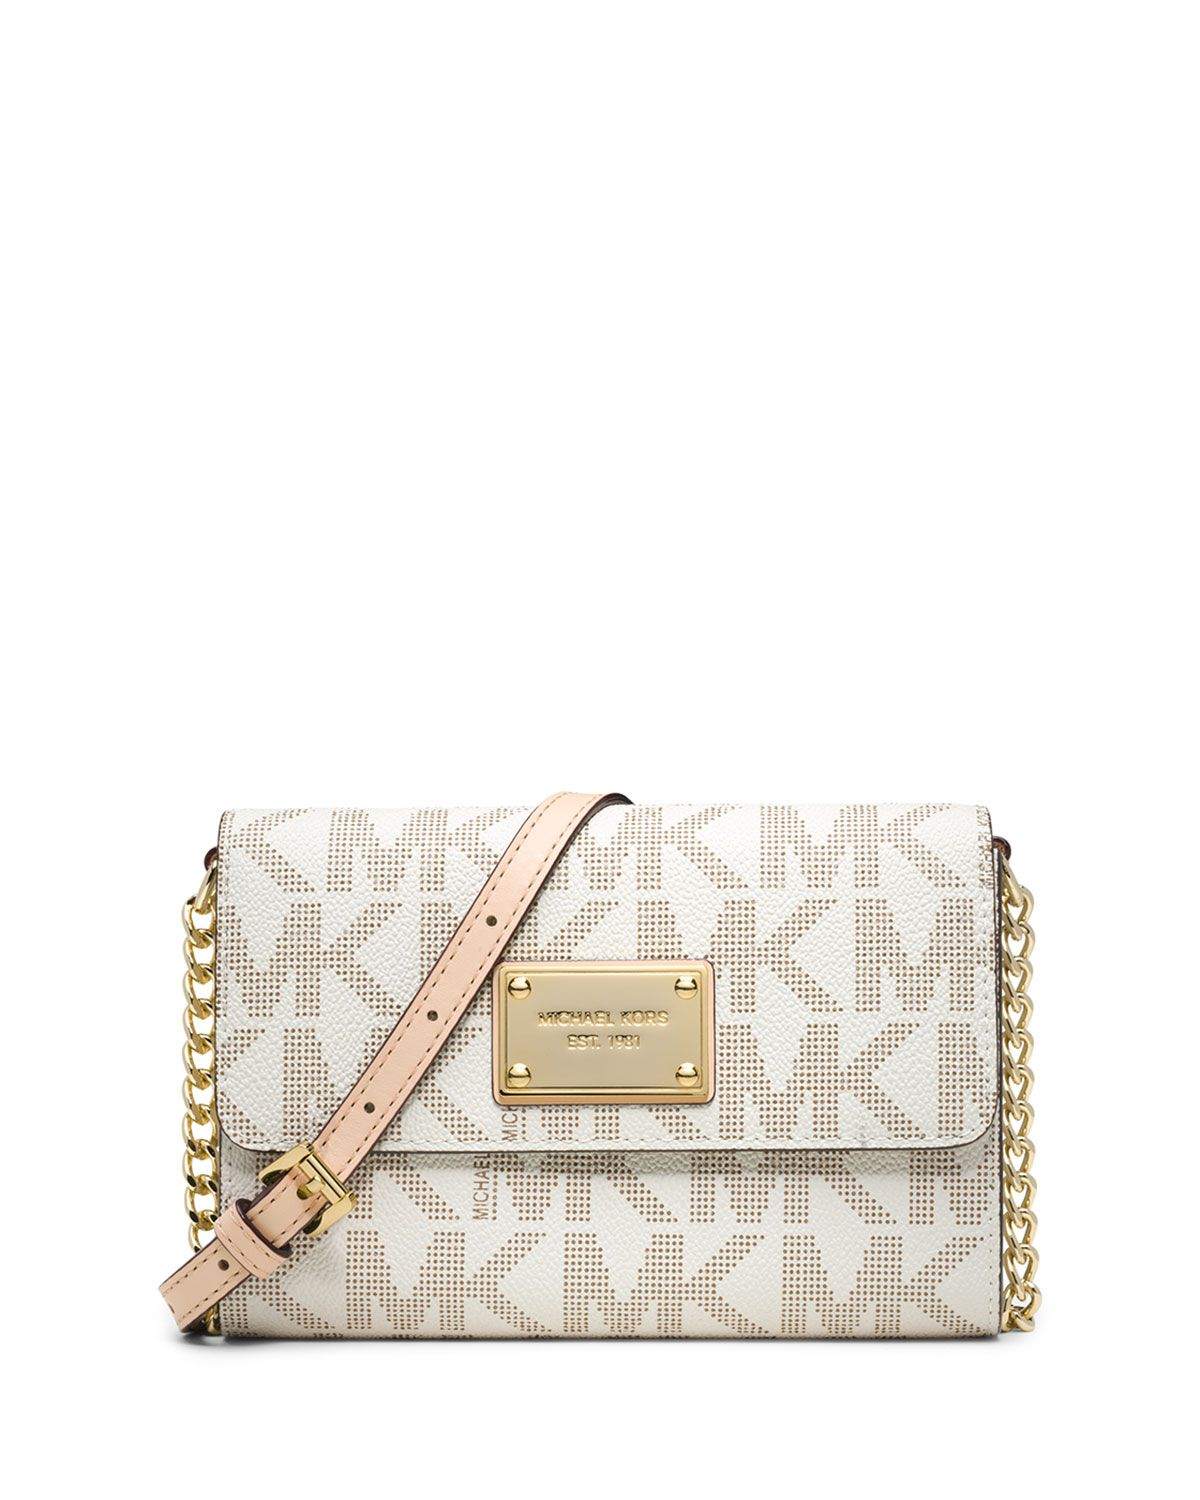 MICHAEL Michael Kors Jet Set Travel Large Phone Crossbody